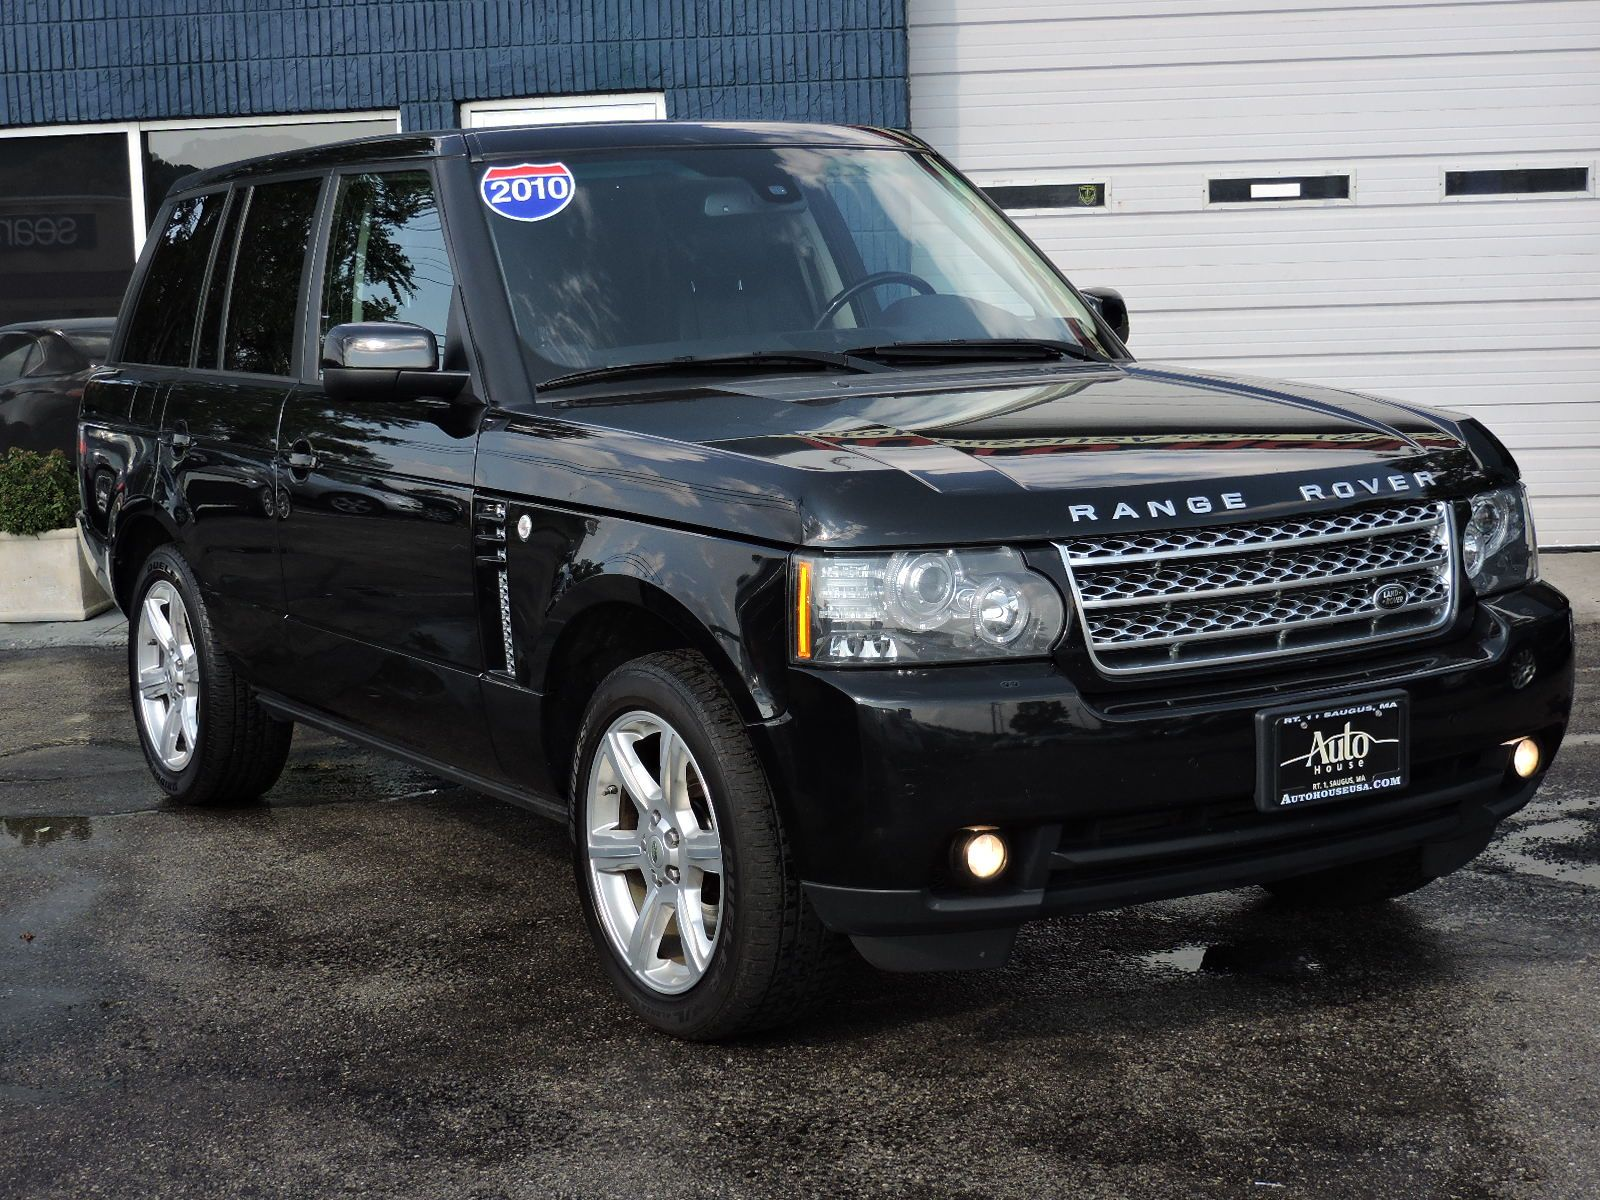 https://saugusautomall.com/uimages/vehicle/4668468/full/2010-Land-Rover-Range-Rover-HSE-LUX-SALMF1D40AA309894-5144.jpeg